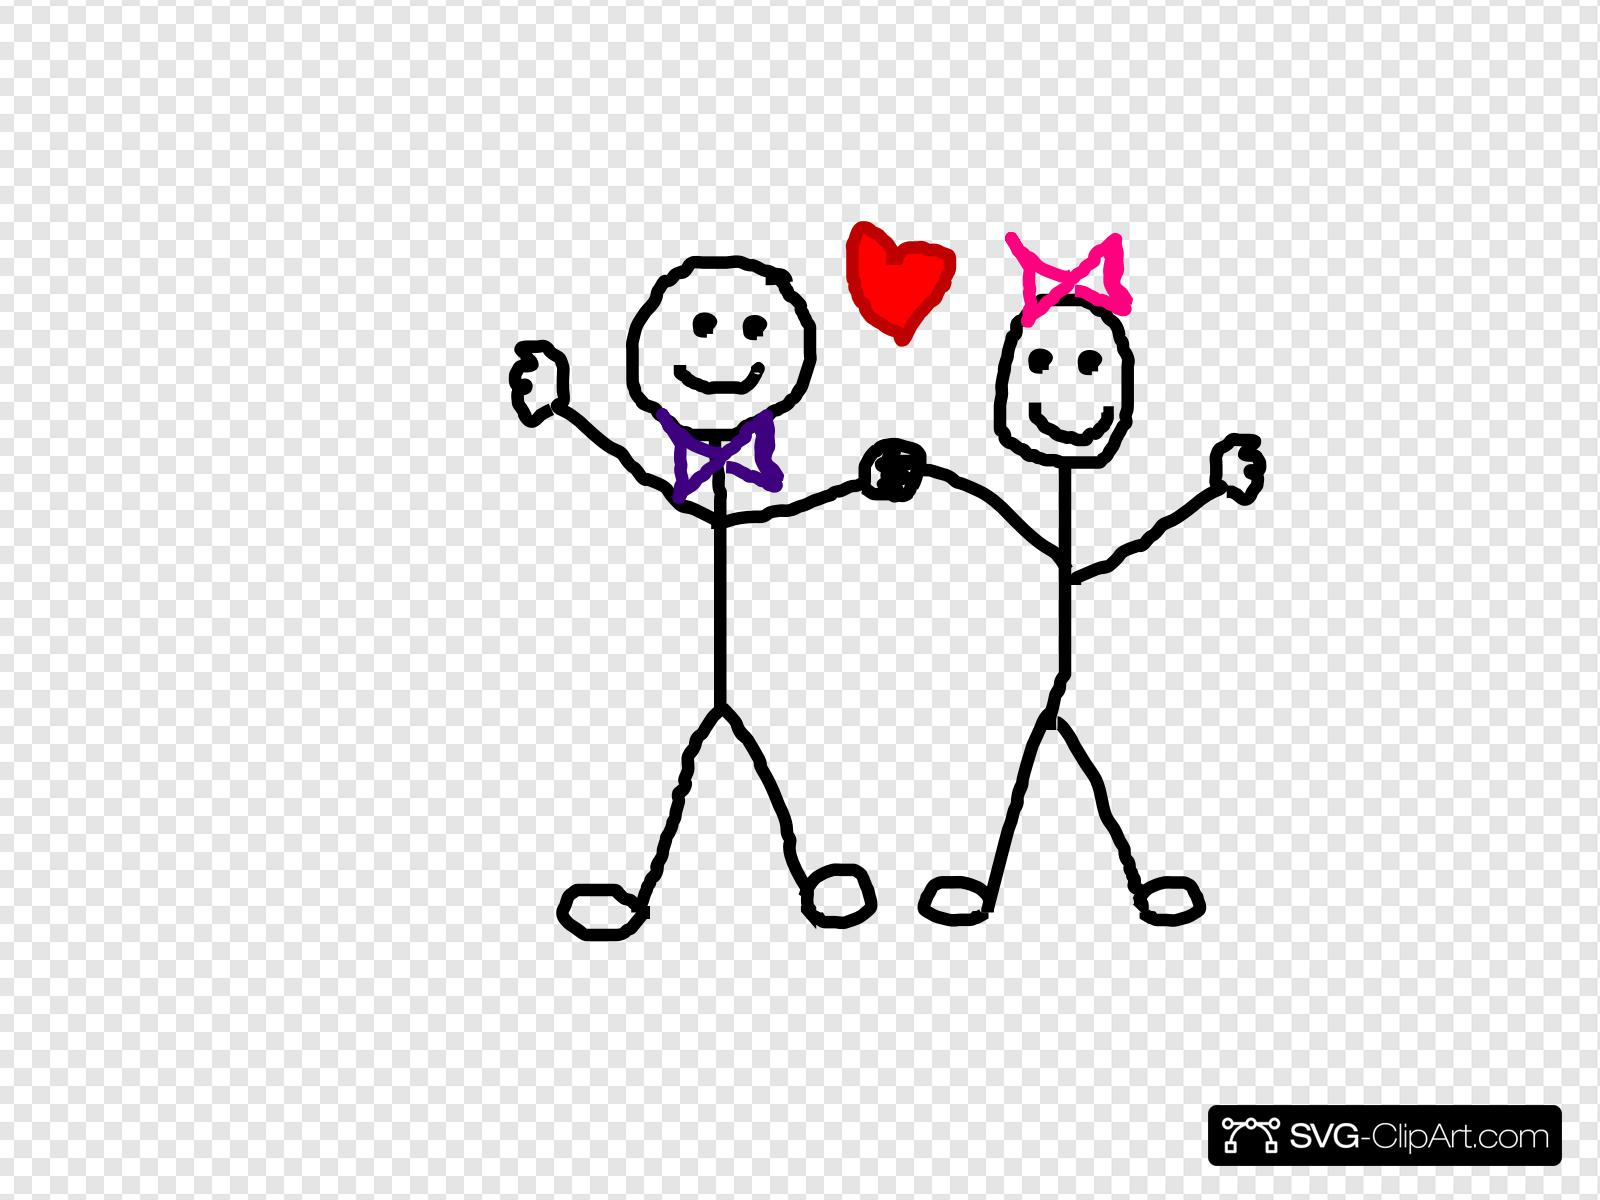 Stick Figure Kids/heart Clip art, Icon and SVG.